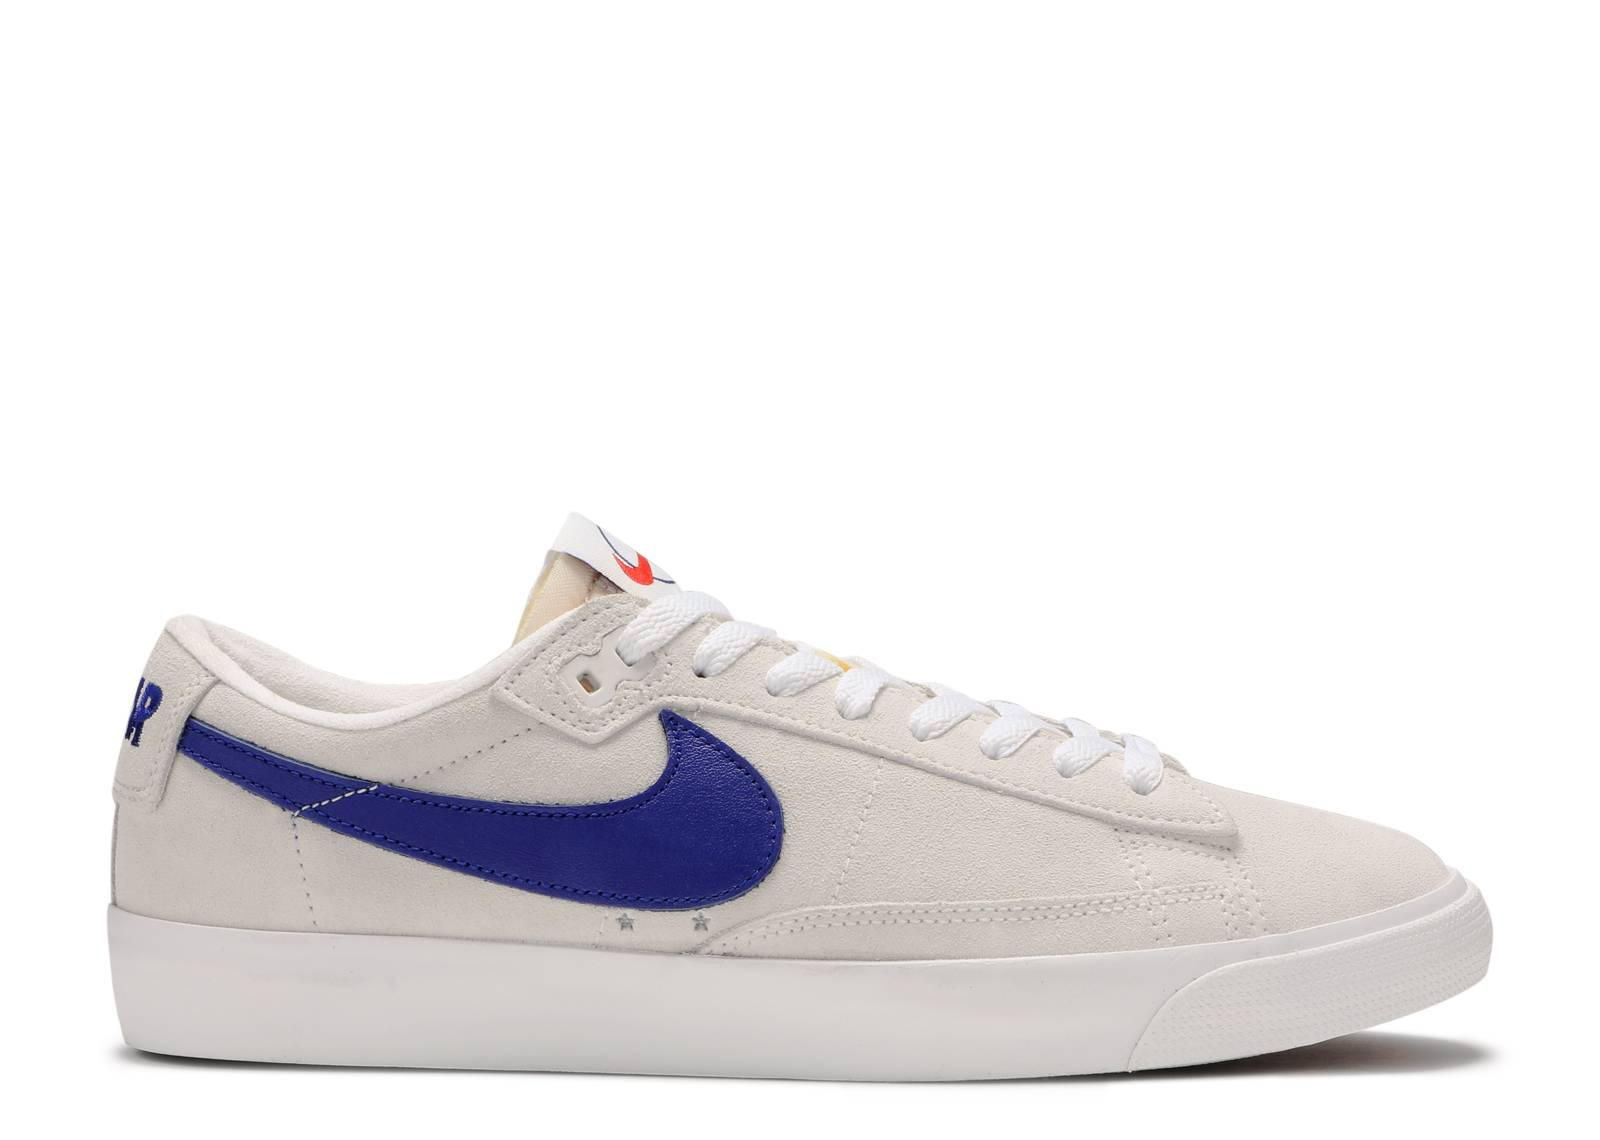 Blazer Royal QS High Top Sneaker